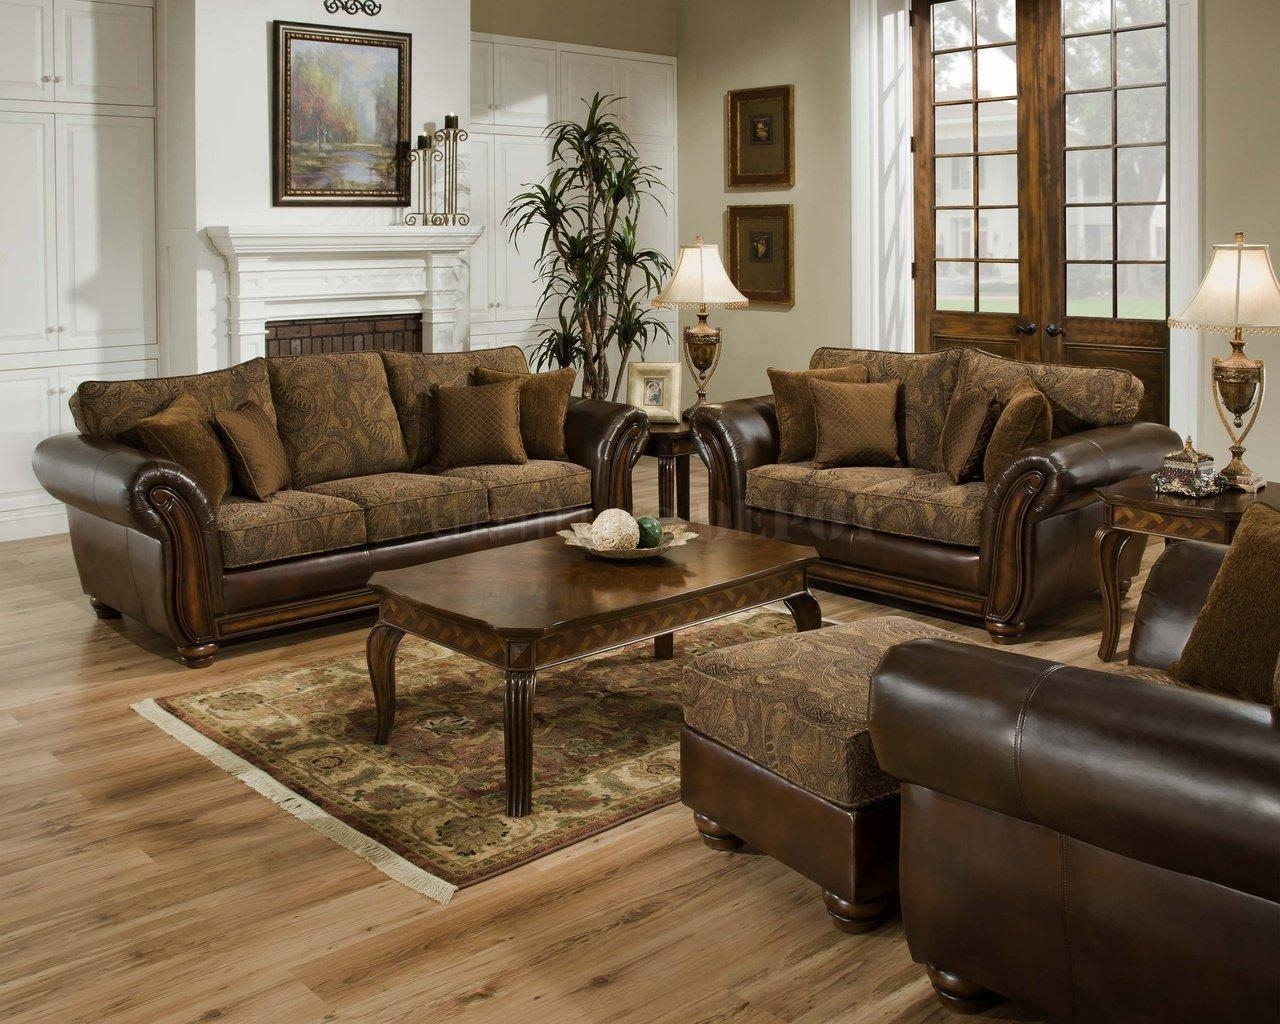 27 Leather Sofas Sets | Auto-Auctions regarding Sofa Loveseat And Chairs